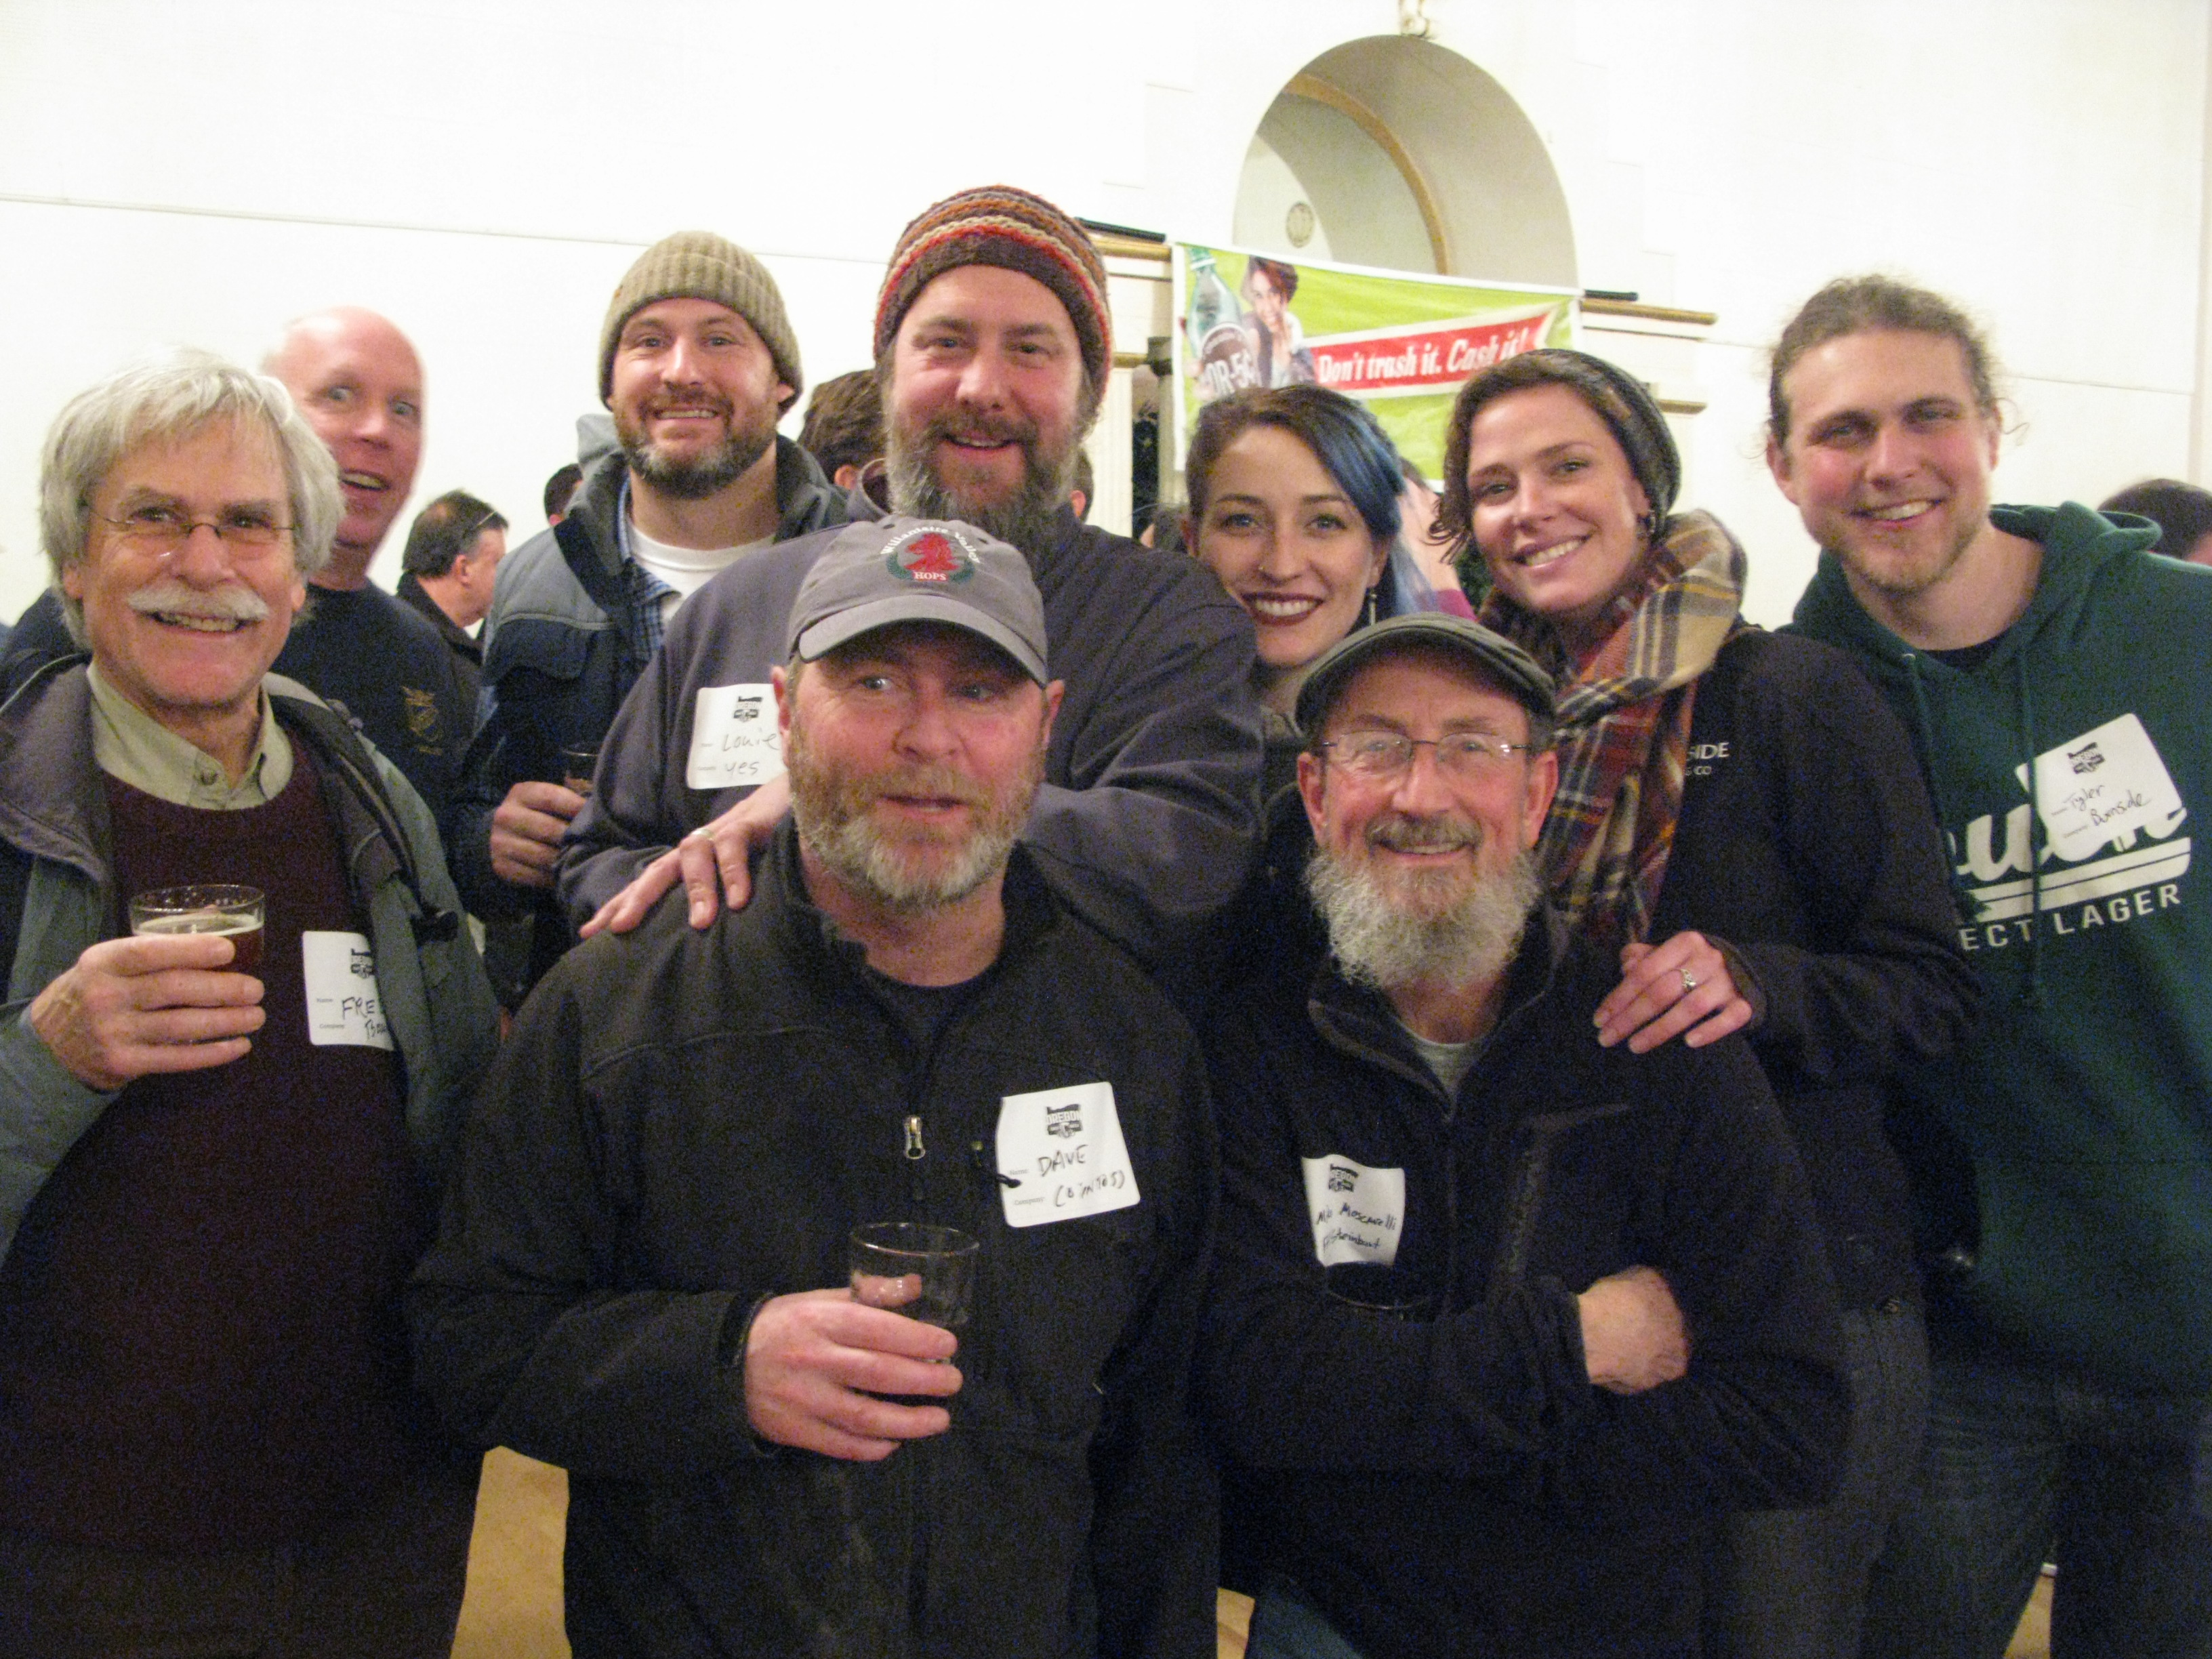 The crew at the annual Oregon Brewers Guild meeting on November 30, 2016. (FoystonFoto)